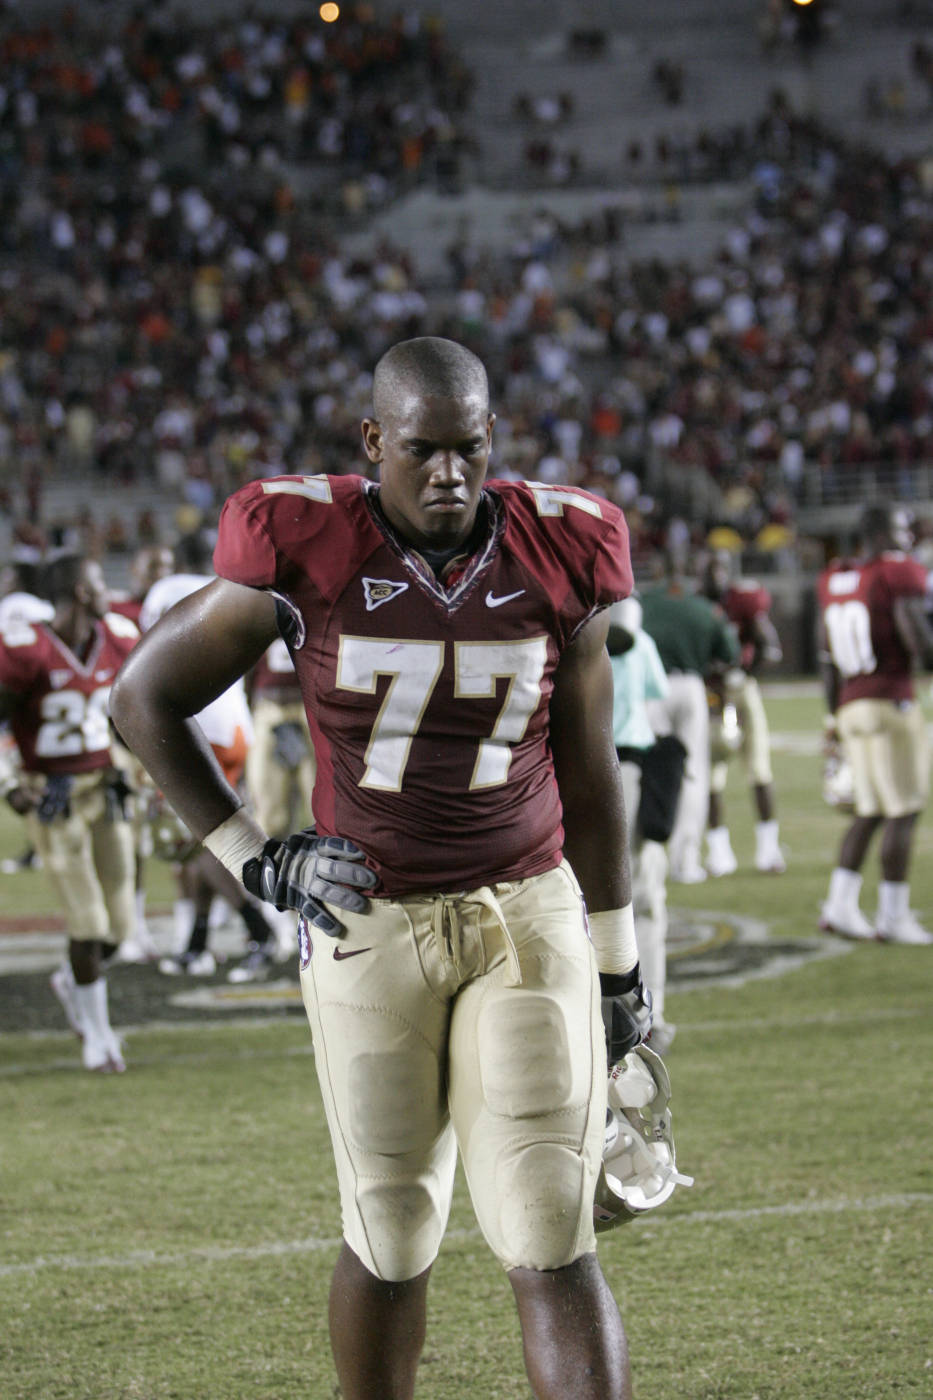 Florida State's Zebrie Sanders walks off the field following Miami's 38-34 victory in an NCAA college football game, Monday, Sept. 7, 2009, in Tallahassee, Fla. (AP Photo/Steve Cannon)